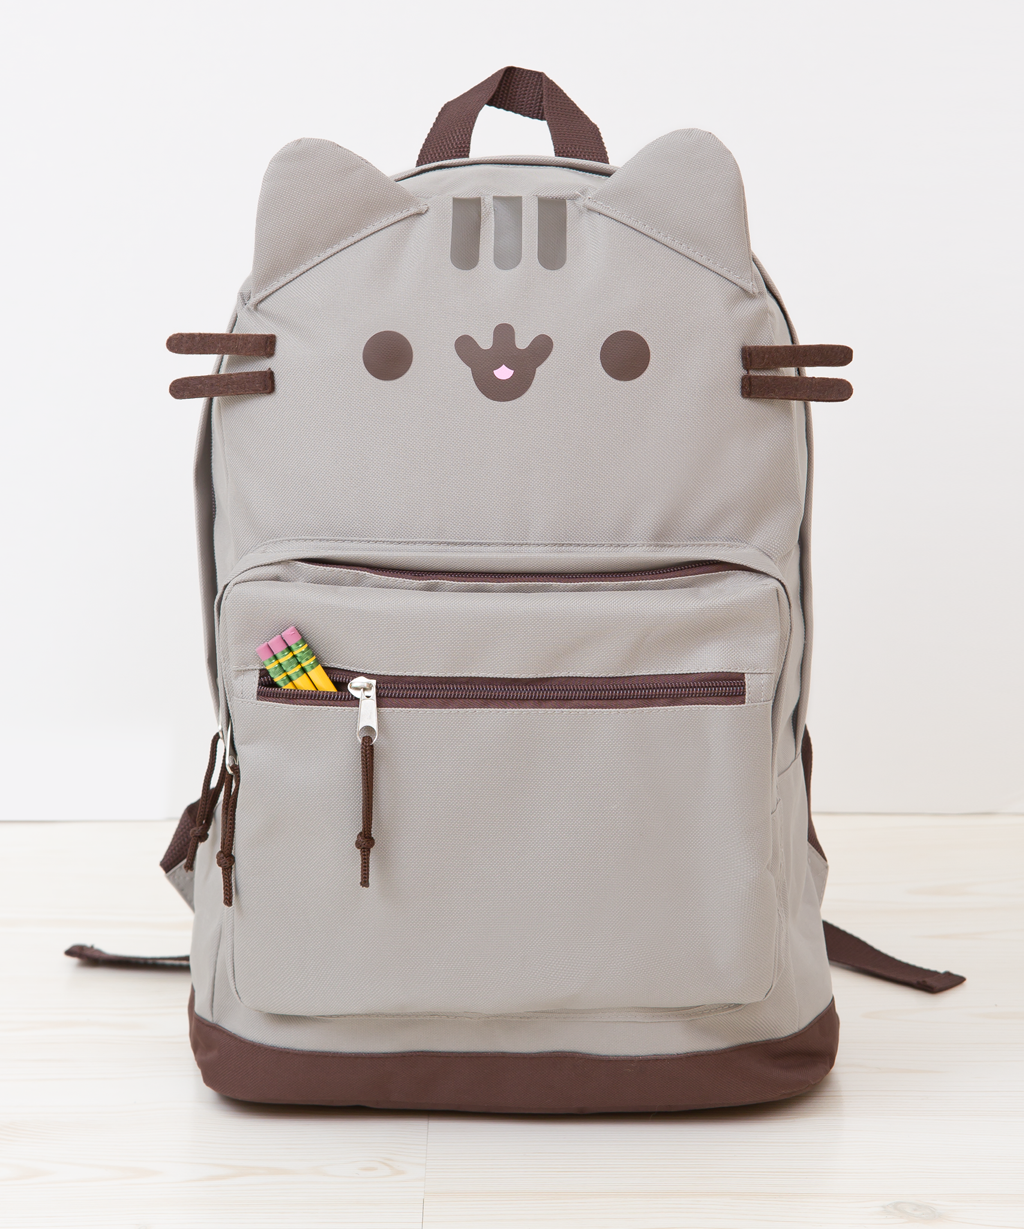 Pusheen The Cat Backpack Hdpng.com  - Cat In A Bag, Transparent background PNG HD thumbnail